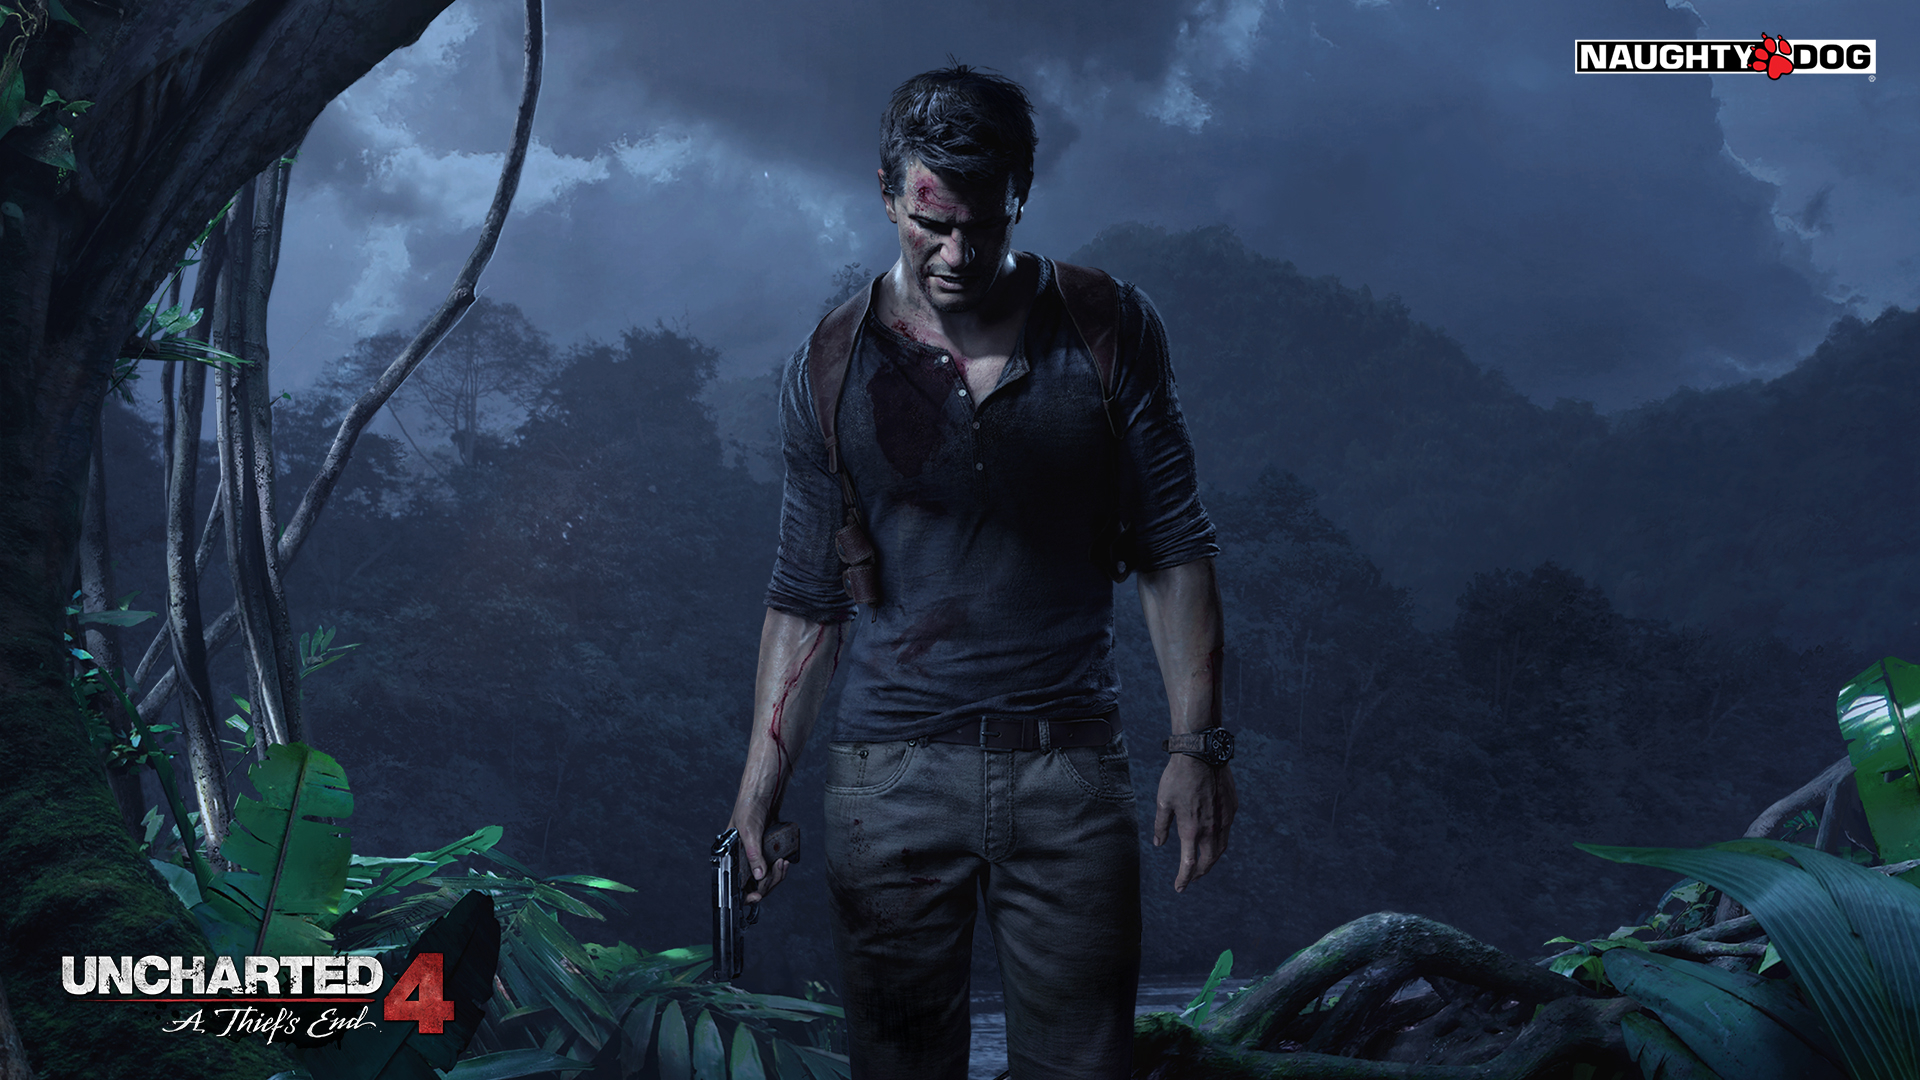 Uncharted 4: A Thief's End Masthead